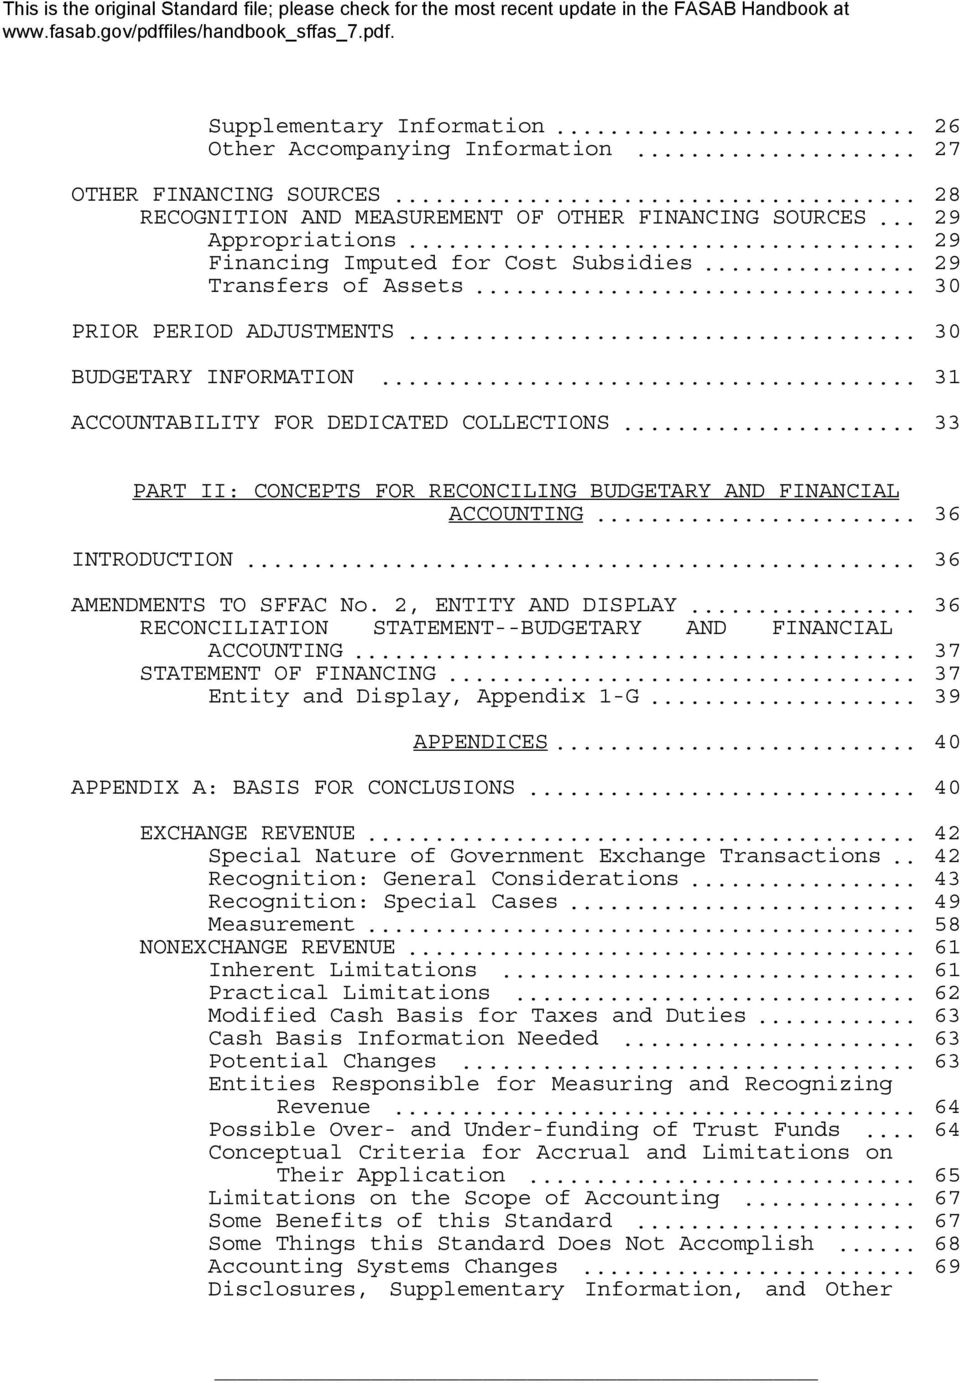 .. 33 PART II: CONCEPTS FOR RECONCILING BUDGETARY AND FINANCIAL ACCOUNTING... 36 INTRODUCTION... 36 AMENDMENTS TO SFFAC No. 2, ENTITY AND DISPLAY.